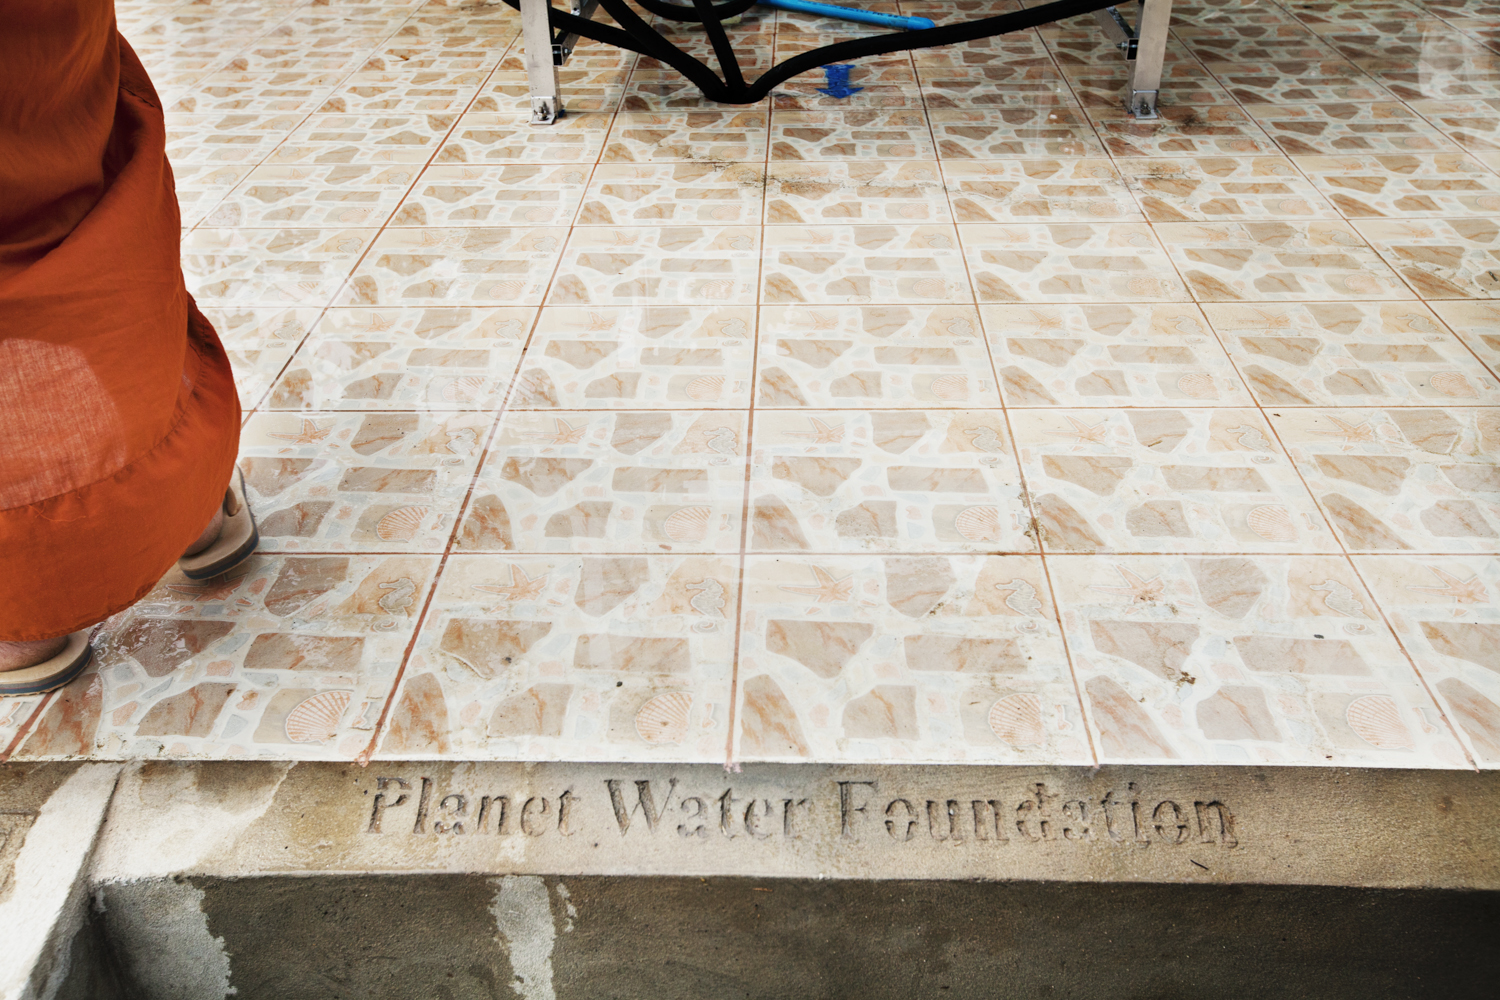 planetwater-27.jpg